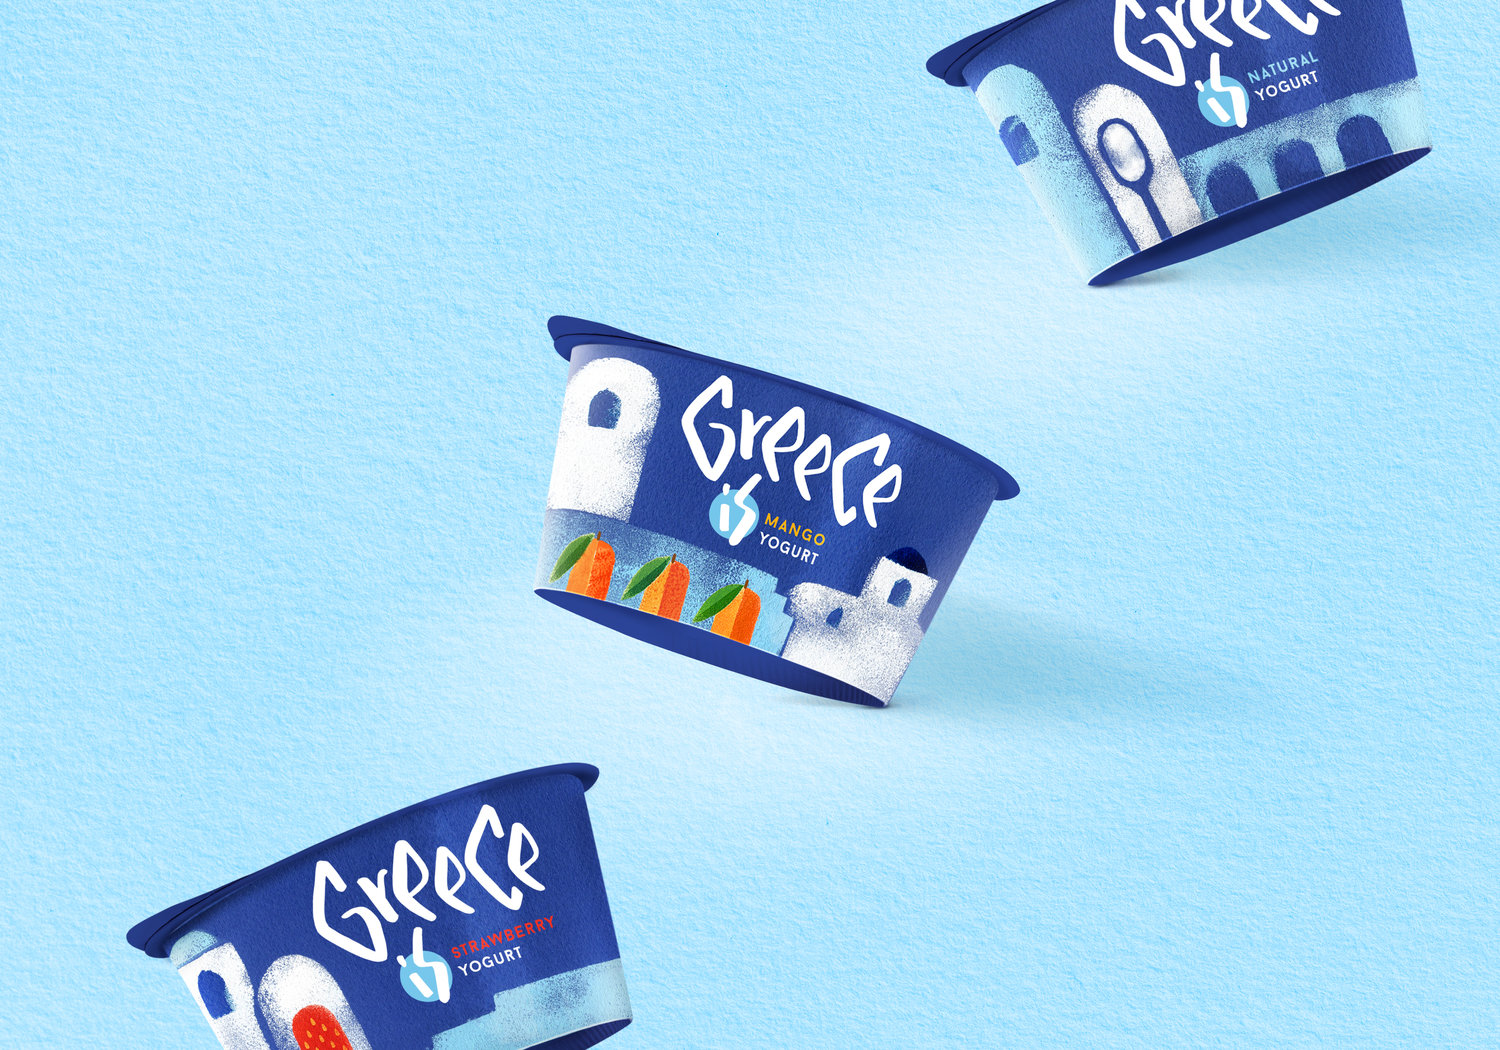 Stunning Branding and Packaging Design for Greece Product